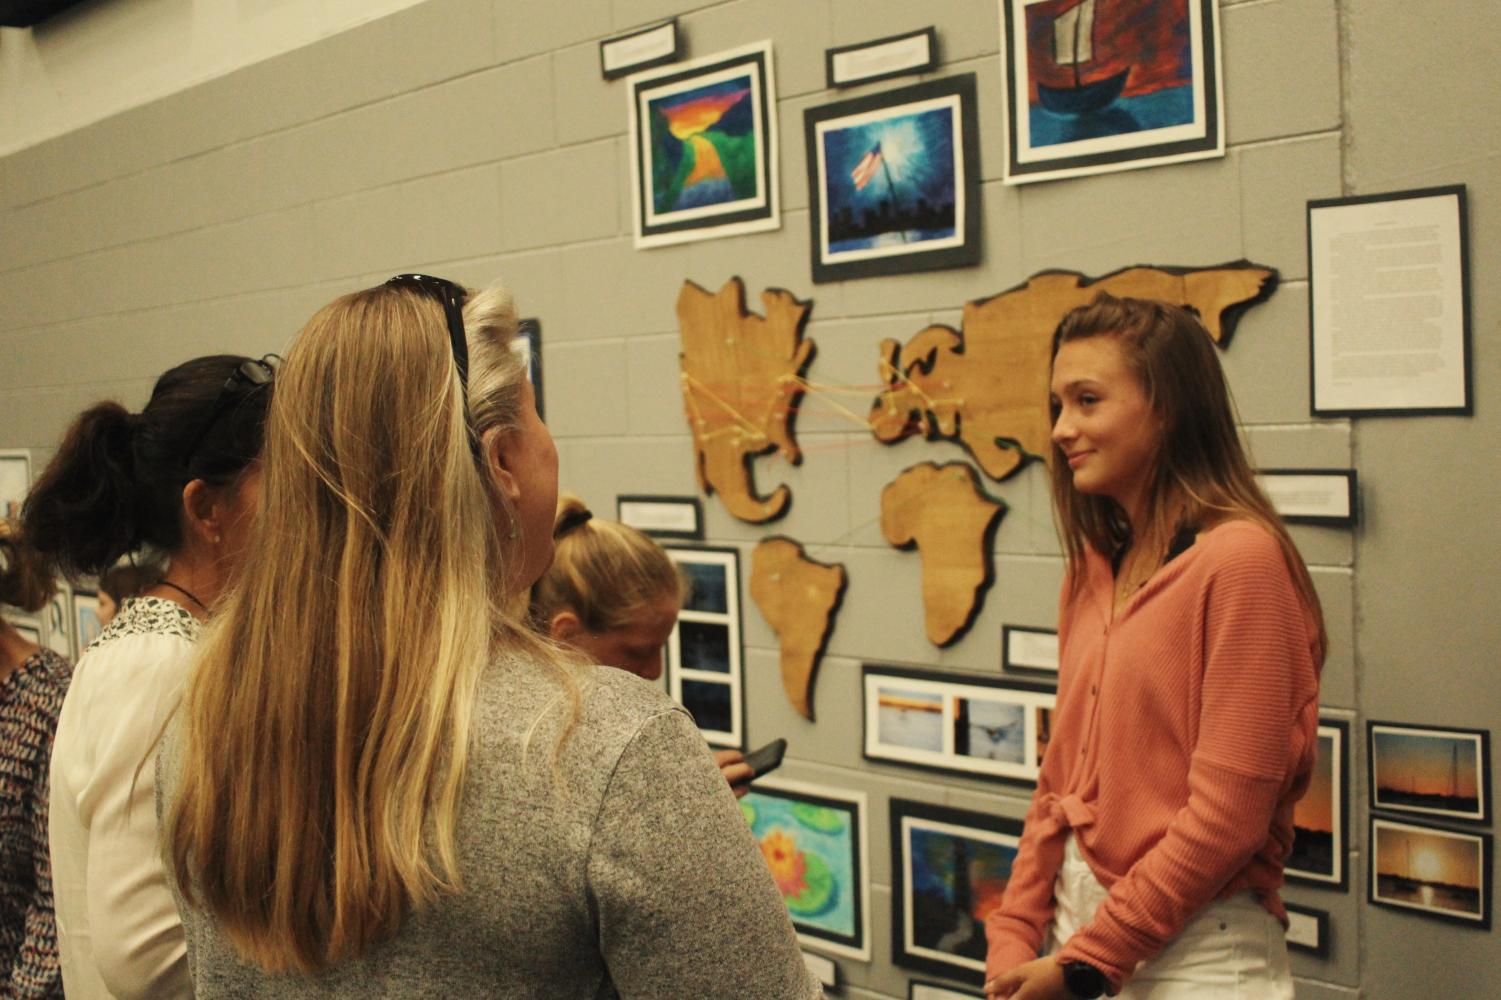 Artist Samantha Davidson ('19) carves out a map of the world and places string indicating where she's been and where she wants to go as the centerpiece of her exhibit. Davidson places three strings indicating places she has lived in, places she has been to, and places she wants to go to someday.